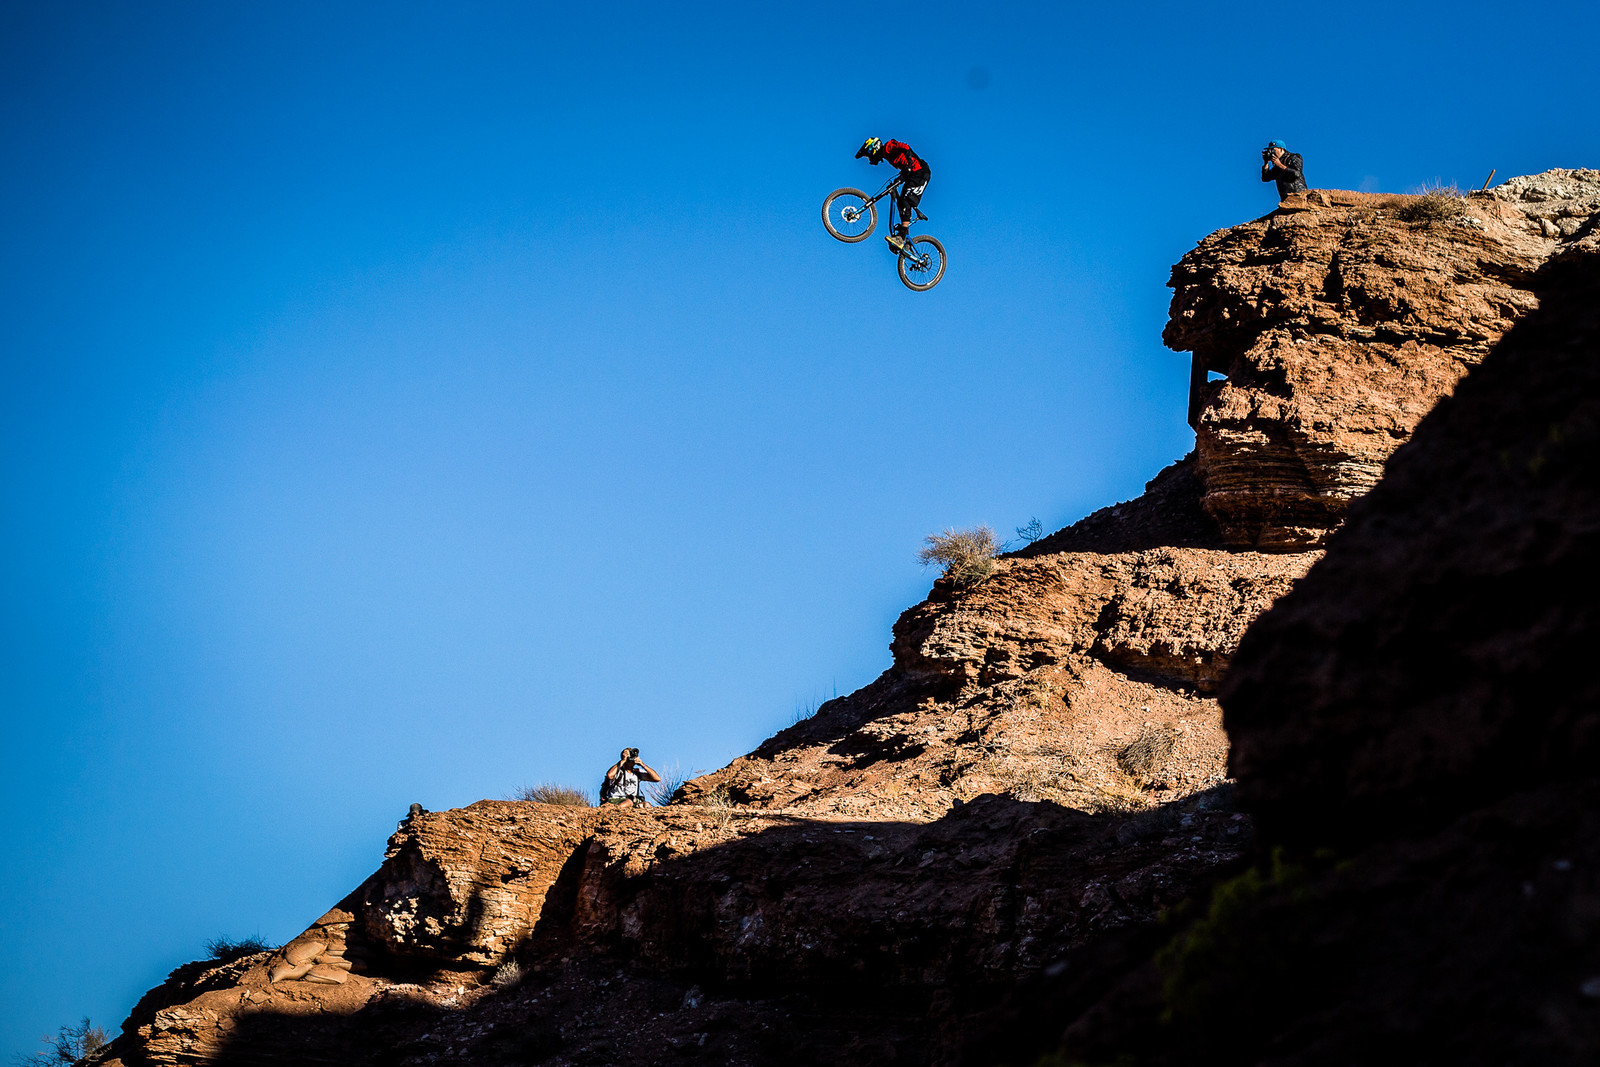 Freaking Massive!!! - @maddogboris' Rampage Photos - Mountain Biking Pictures - Vital MTB